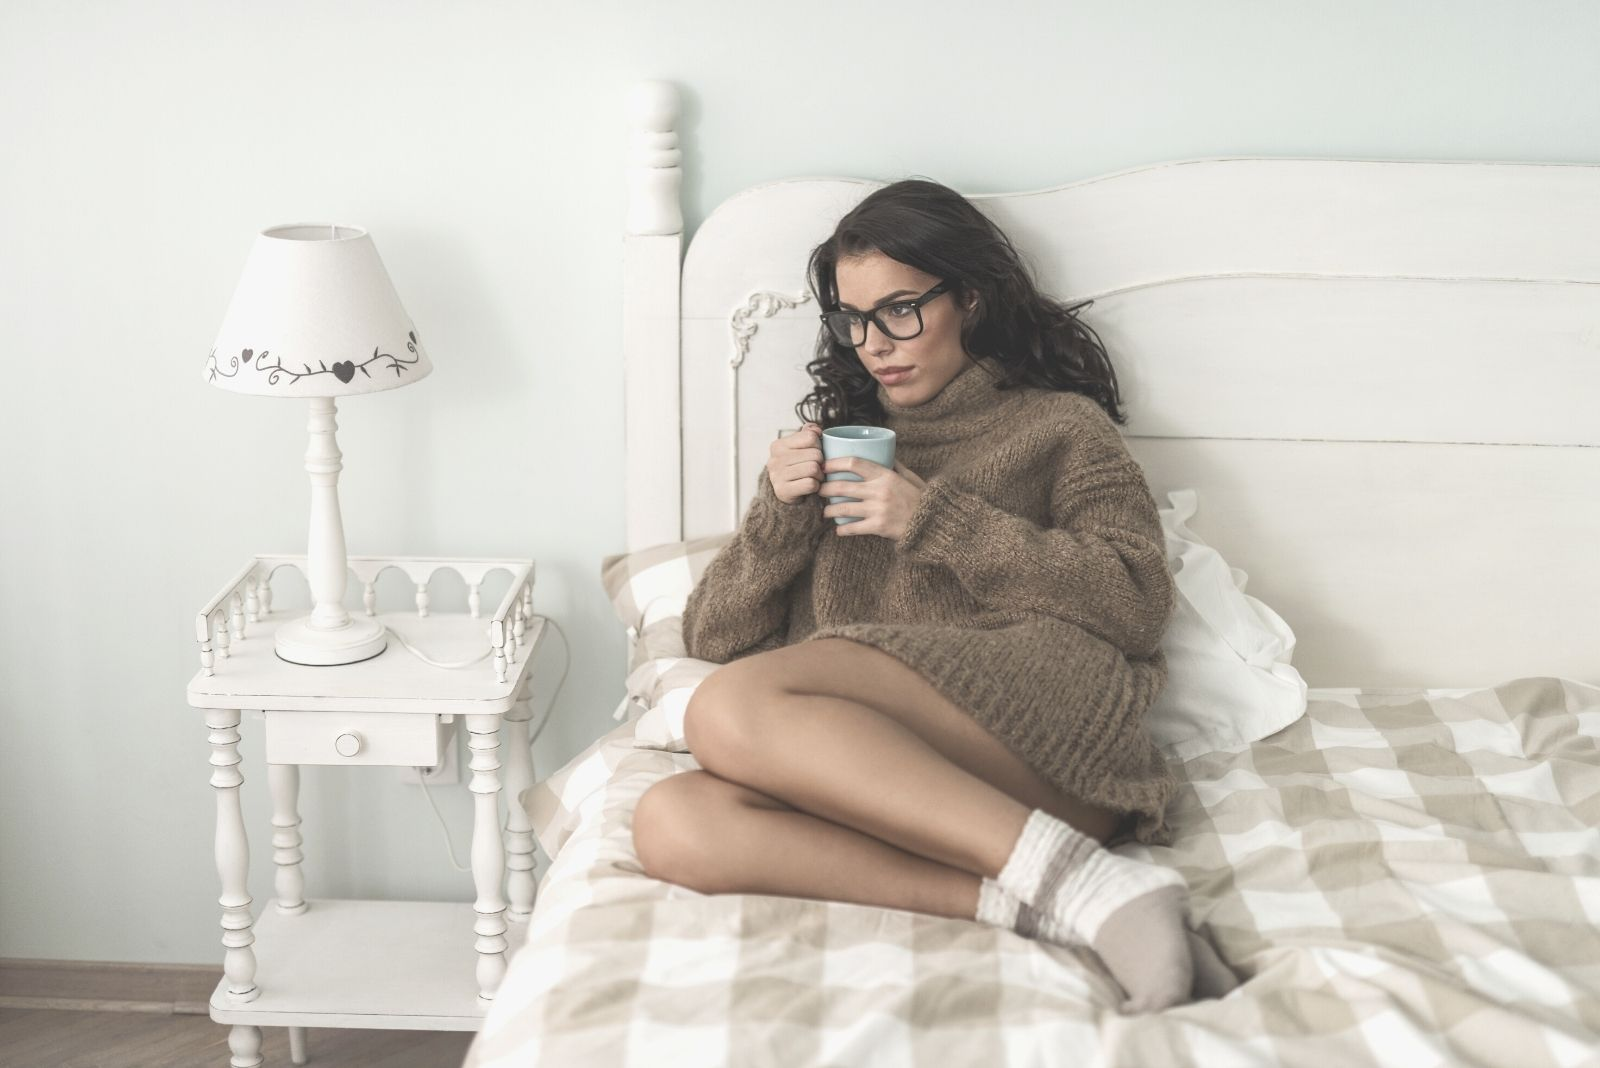 pensive woman in bed drinking coffee wearing eyeglasses and socks in the morning